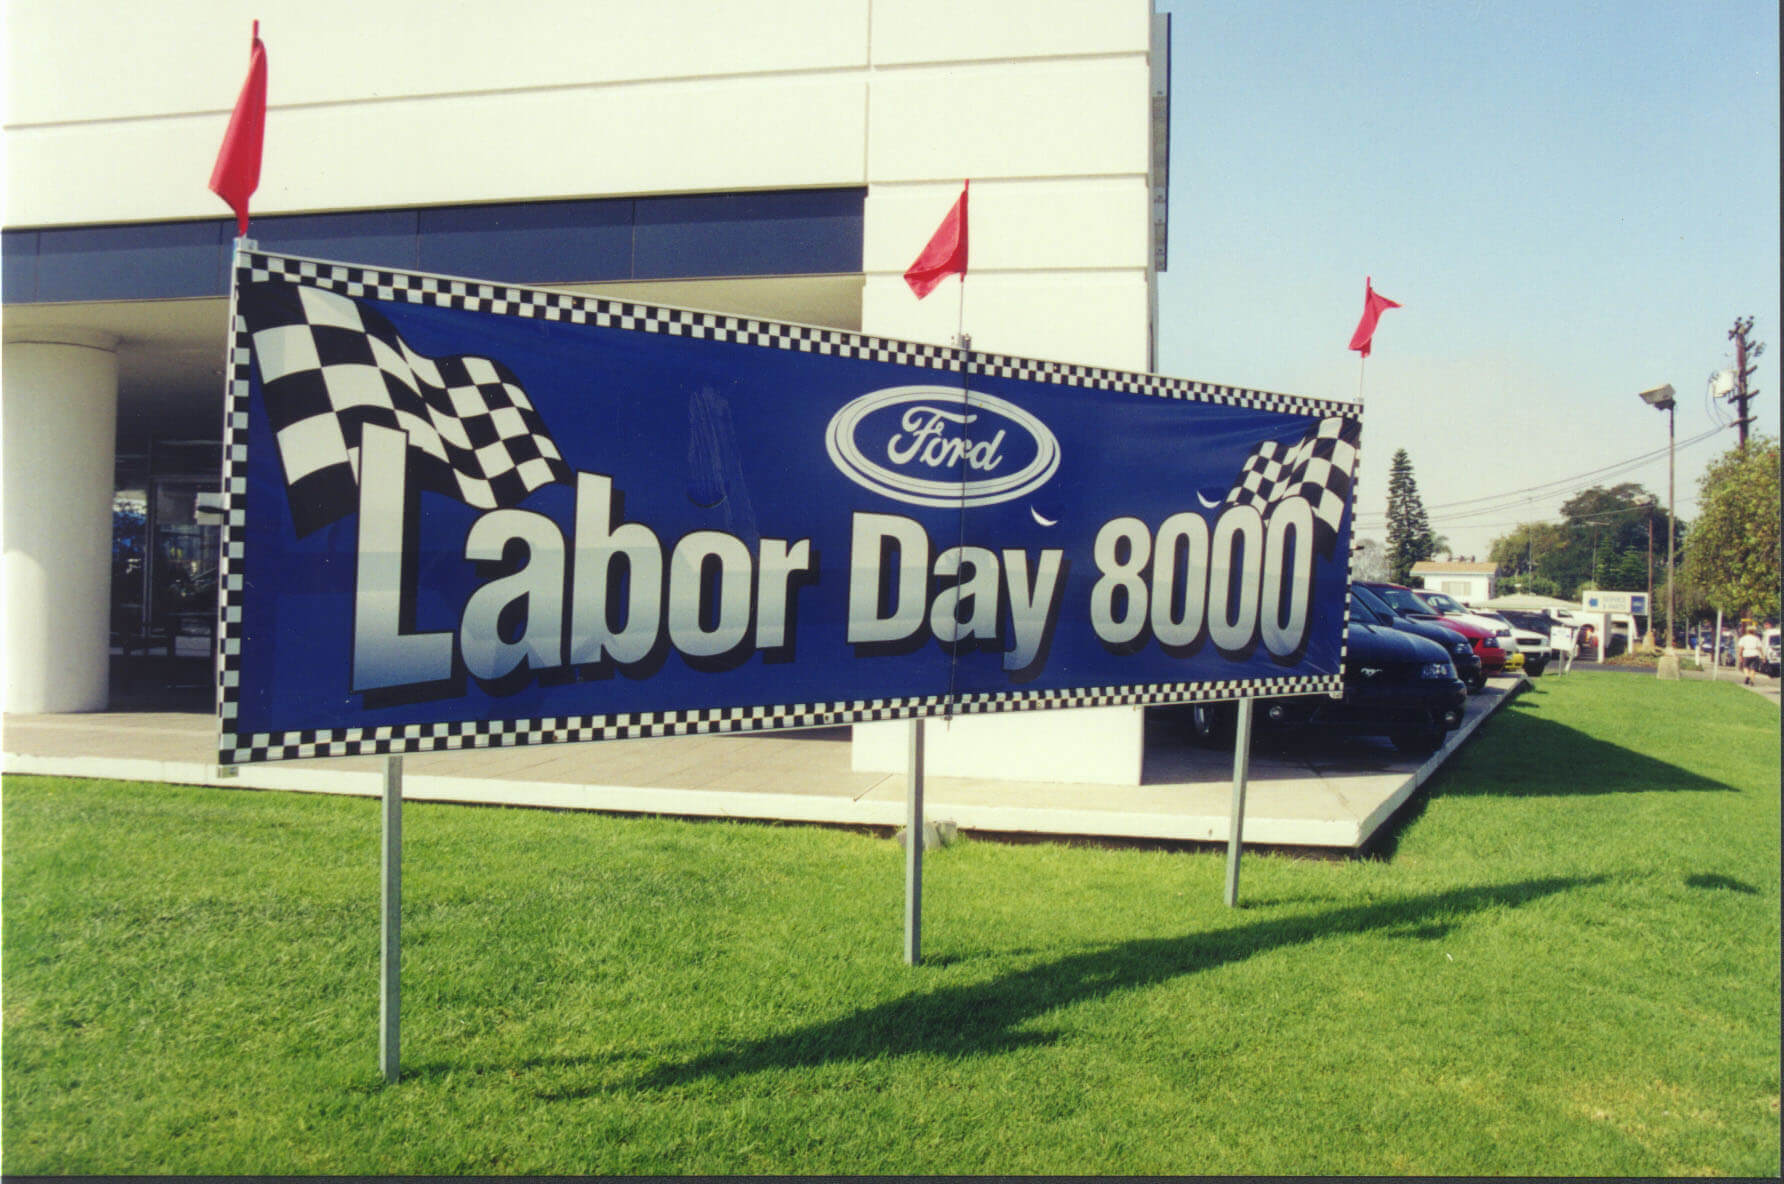 A lawn display for outdoor marketing in a car lot from Voxpop Marketing Systems